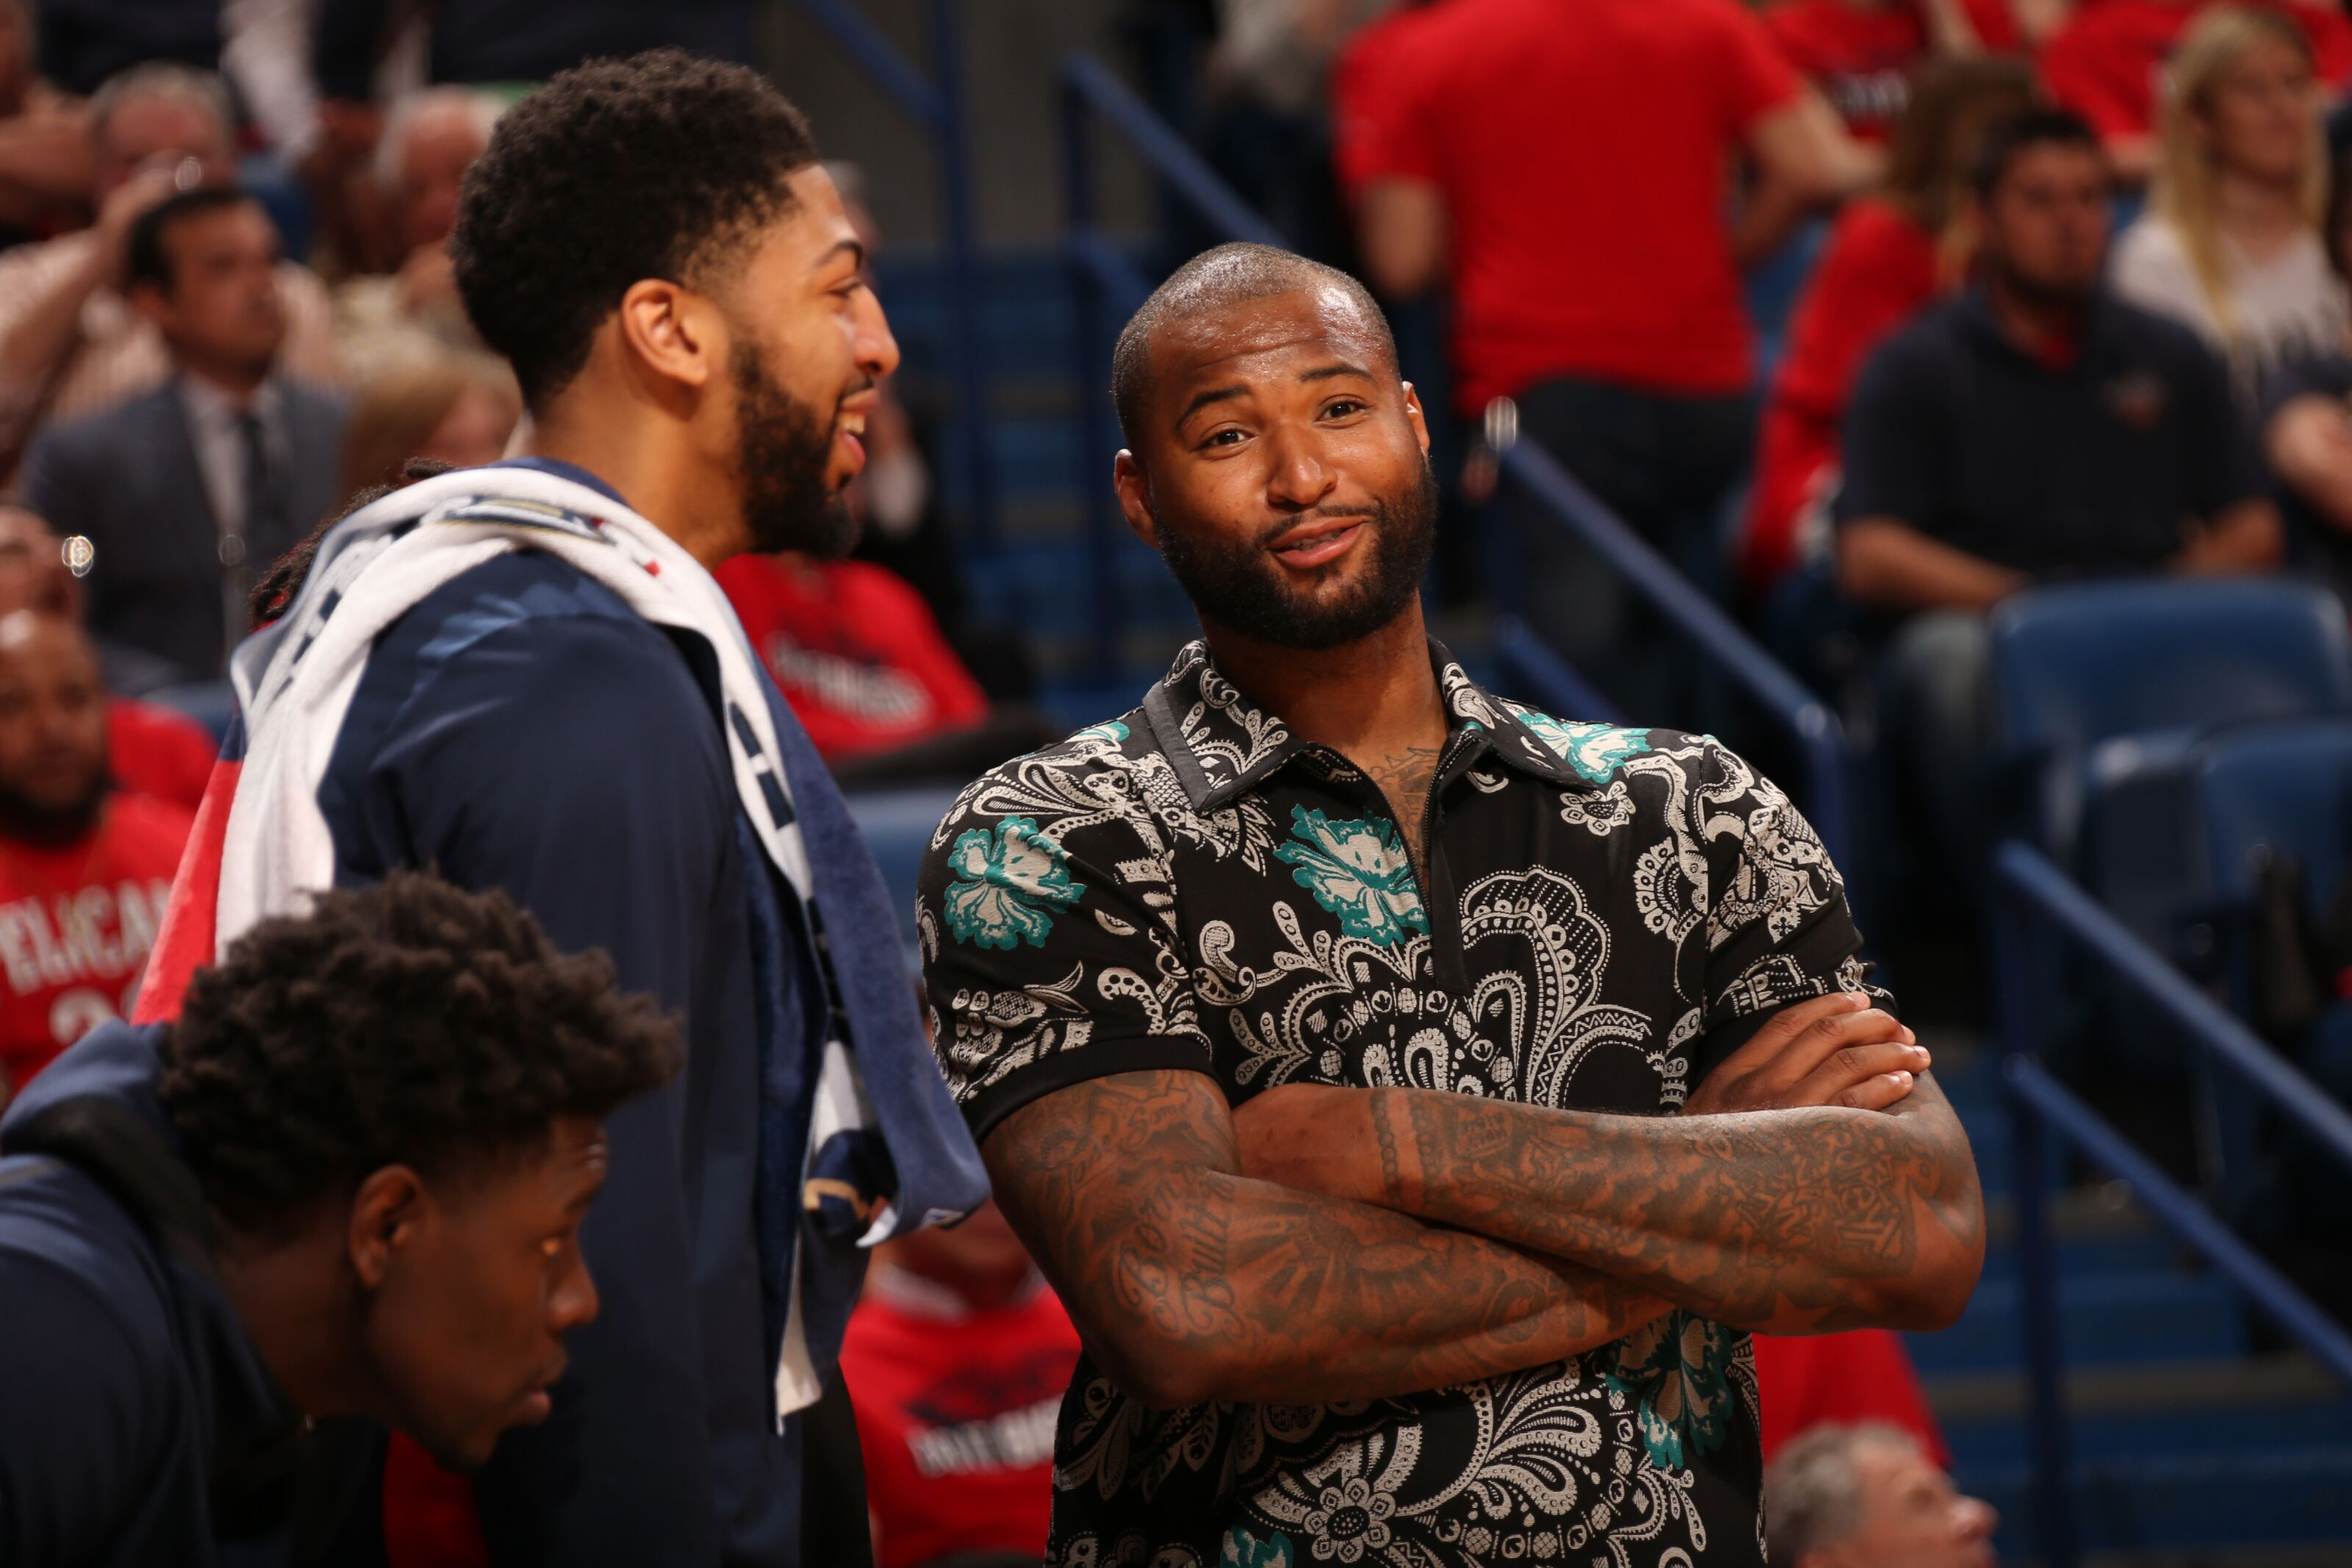 Los Angeles Lakers: Will they have a Big 3 with DeMarcus Cousins hurt?